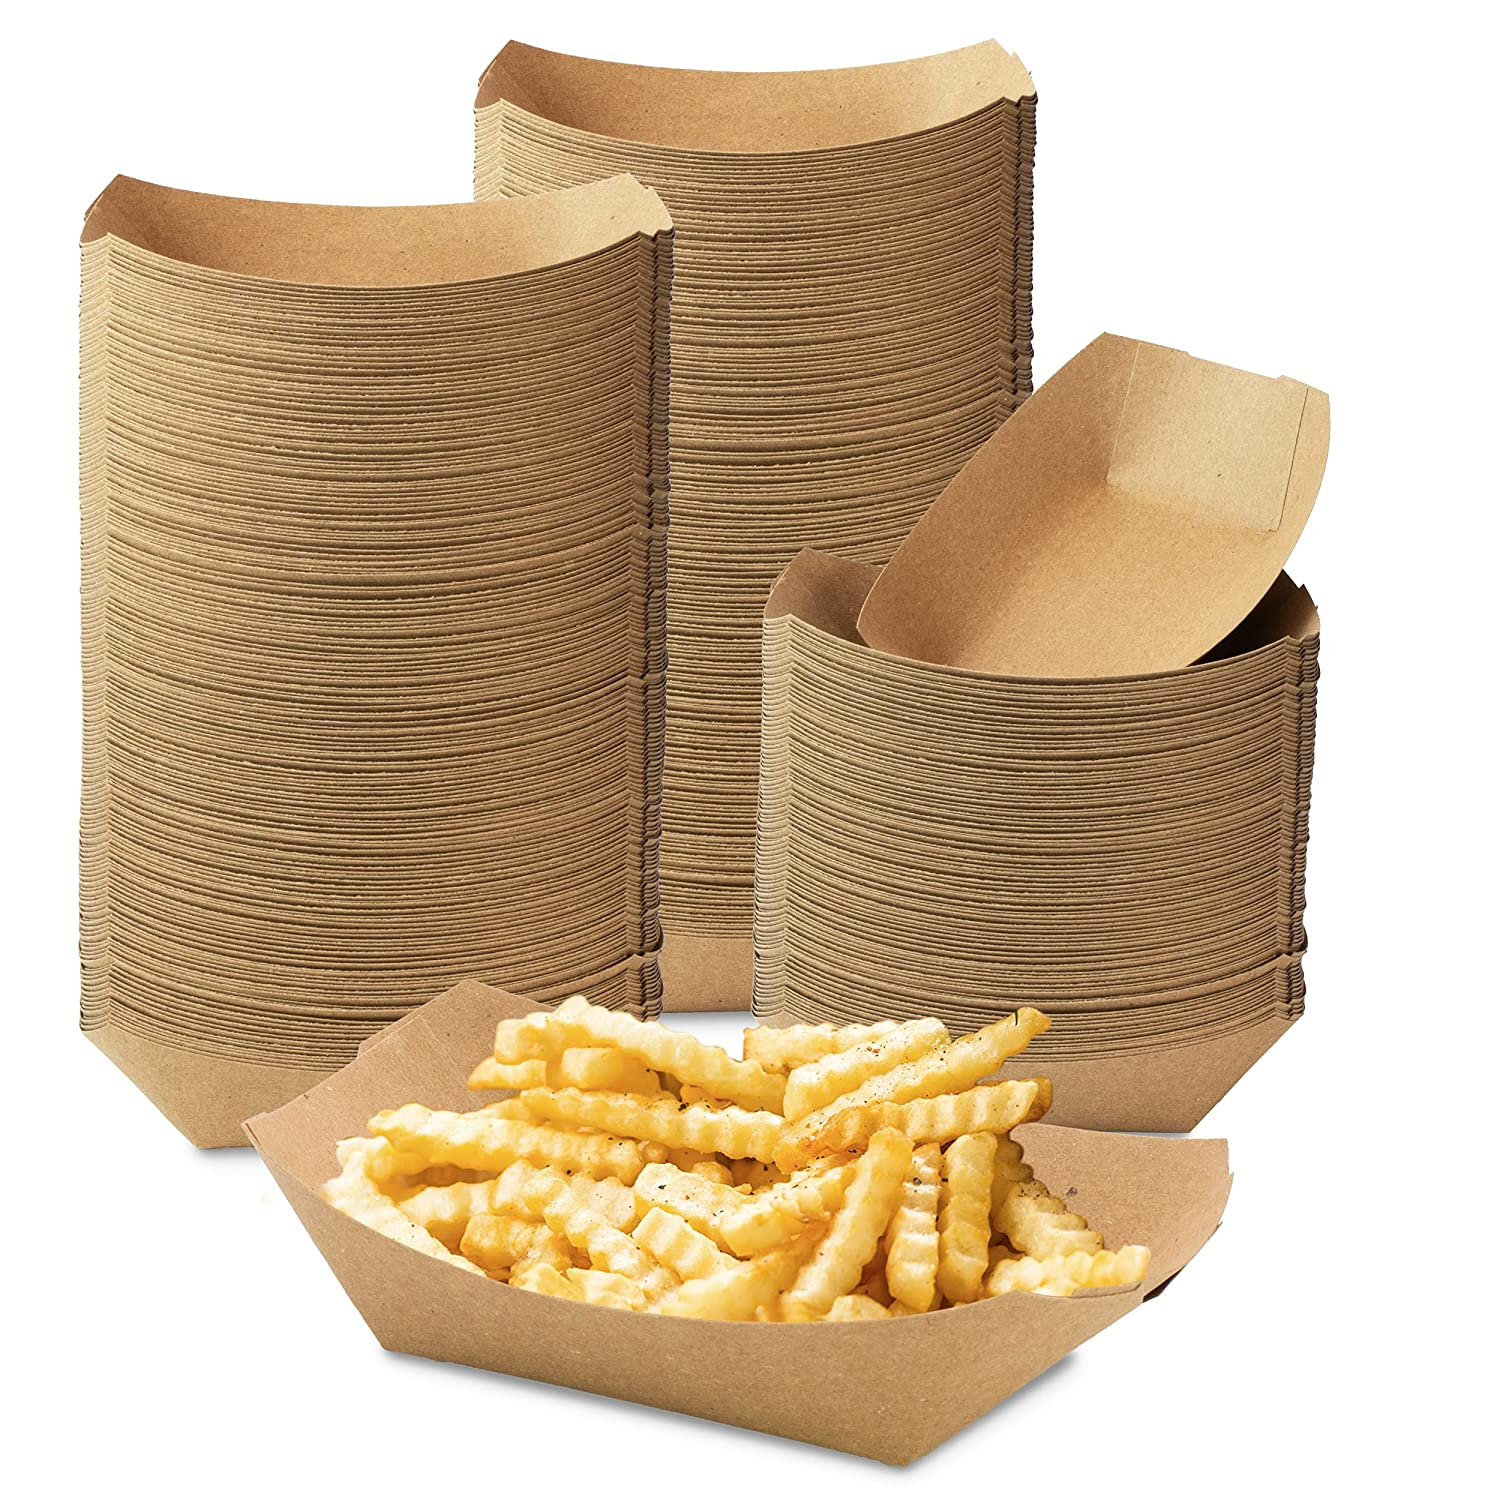 [1000 Pack] 1 lb Heavy Duty Disposable Kraft Brown Paper Food Trays Grease Resistant Fast Food Paperboard Boat Basket for Parties Picnics Carnival, Holds Tacos Nachos Fries Hot Corn Dog, 1000 Total